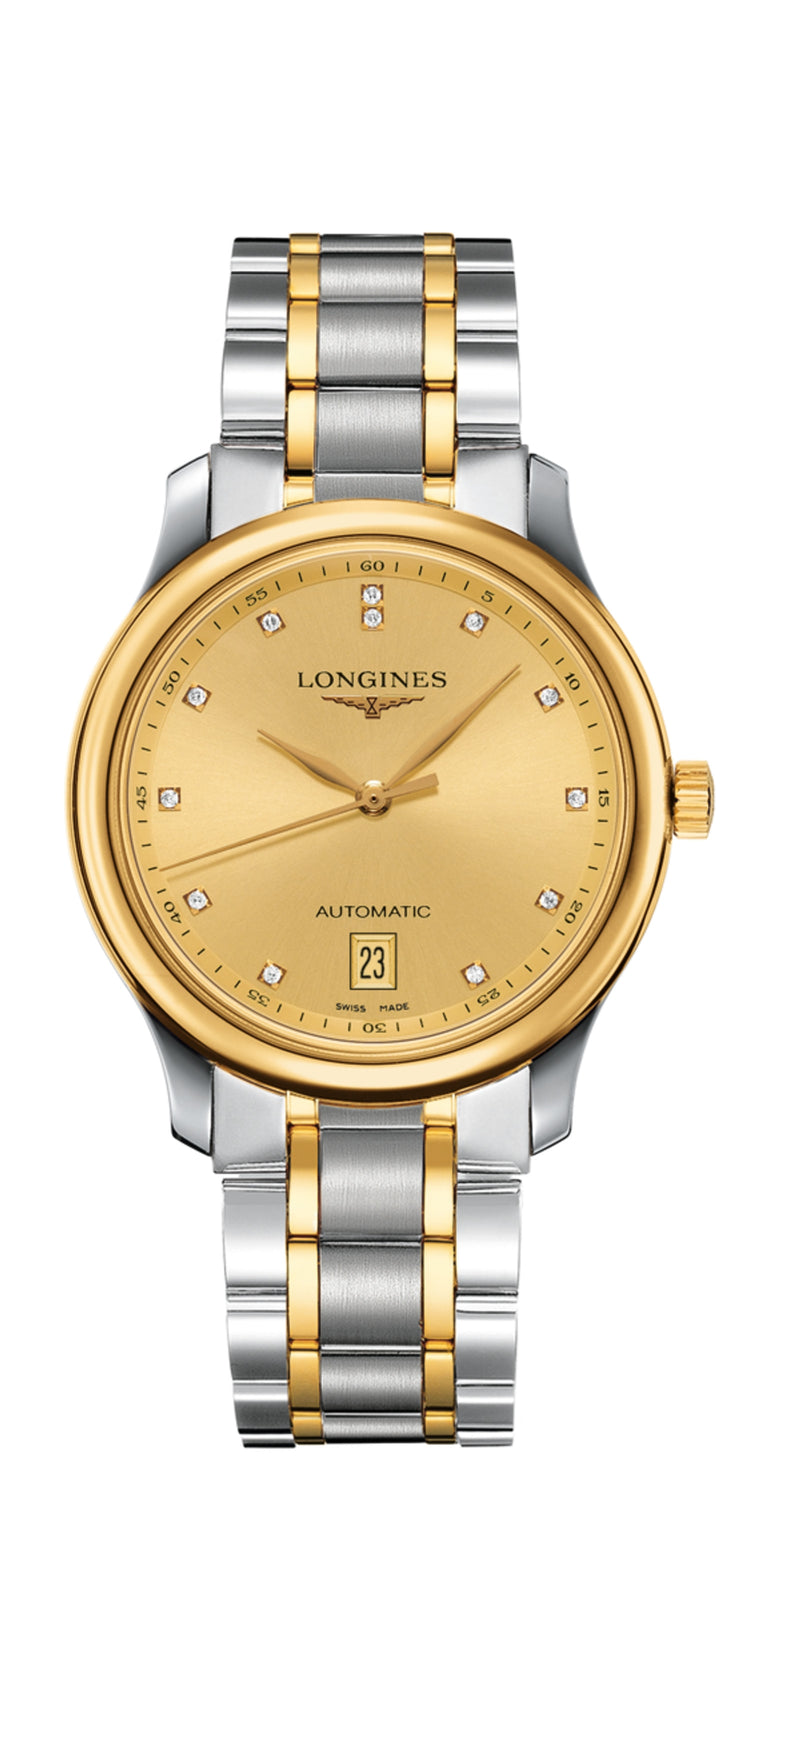 Longines L2.628.5.37.7 Master Collection, rannekello - Longines - Laatukoru